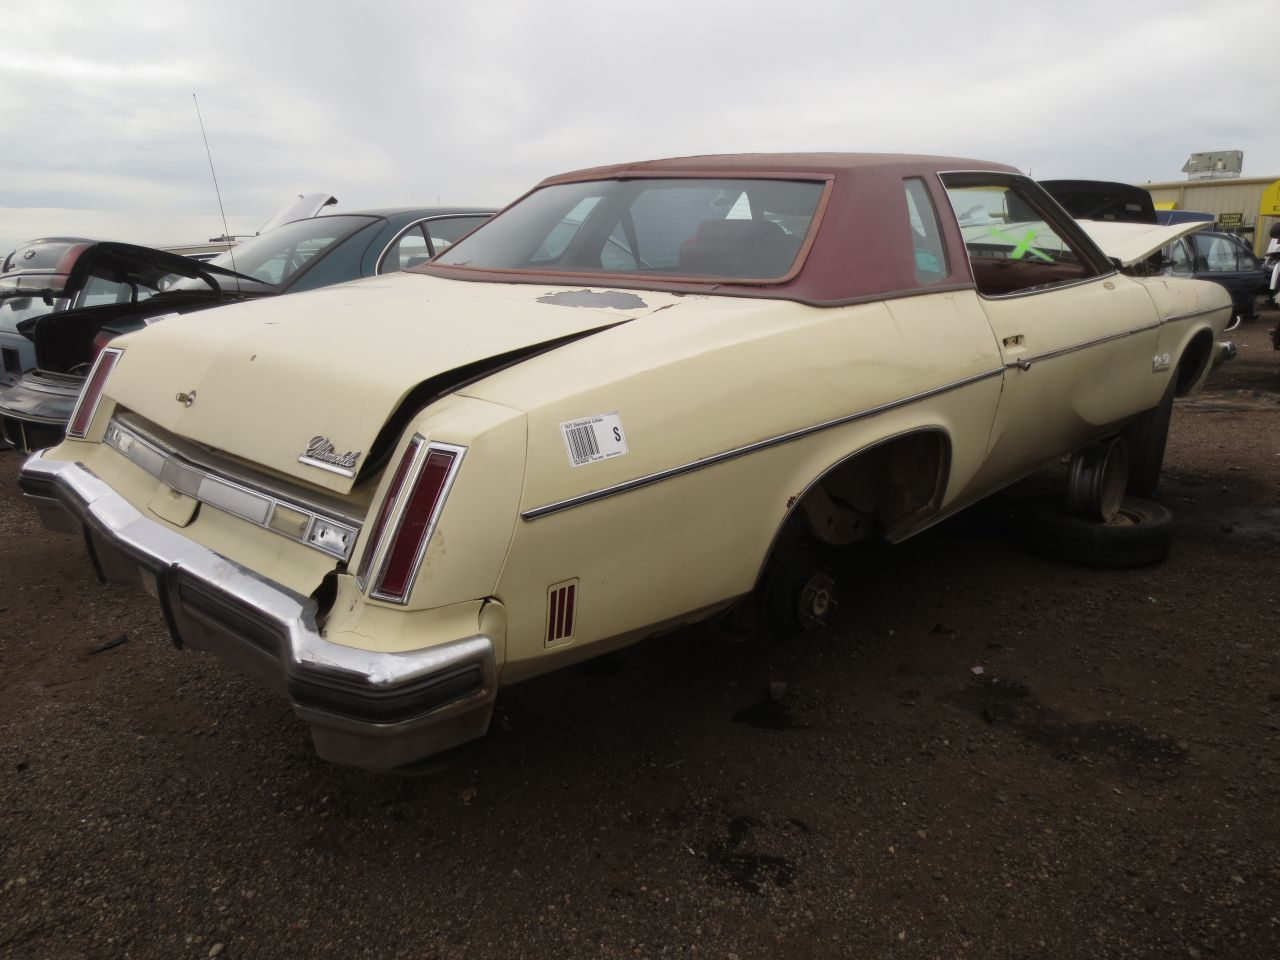 Junkyard find 1974 oldsmobile cutlass salon the truth for 1974 oldsmobile cutlass salon for sale